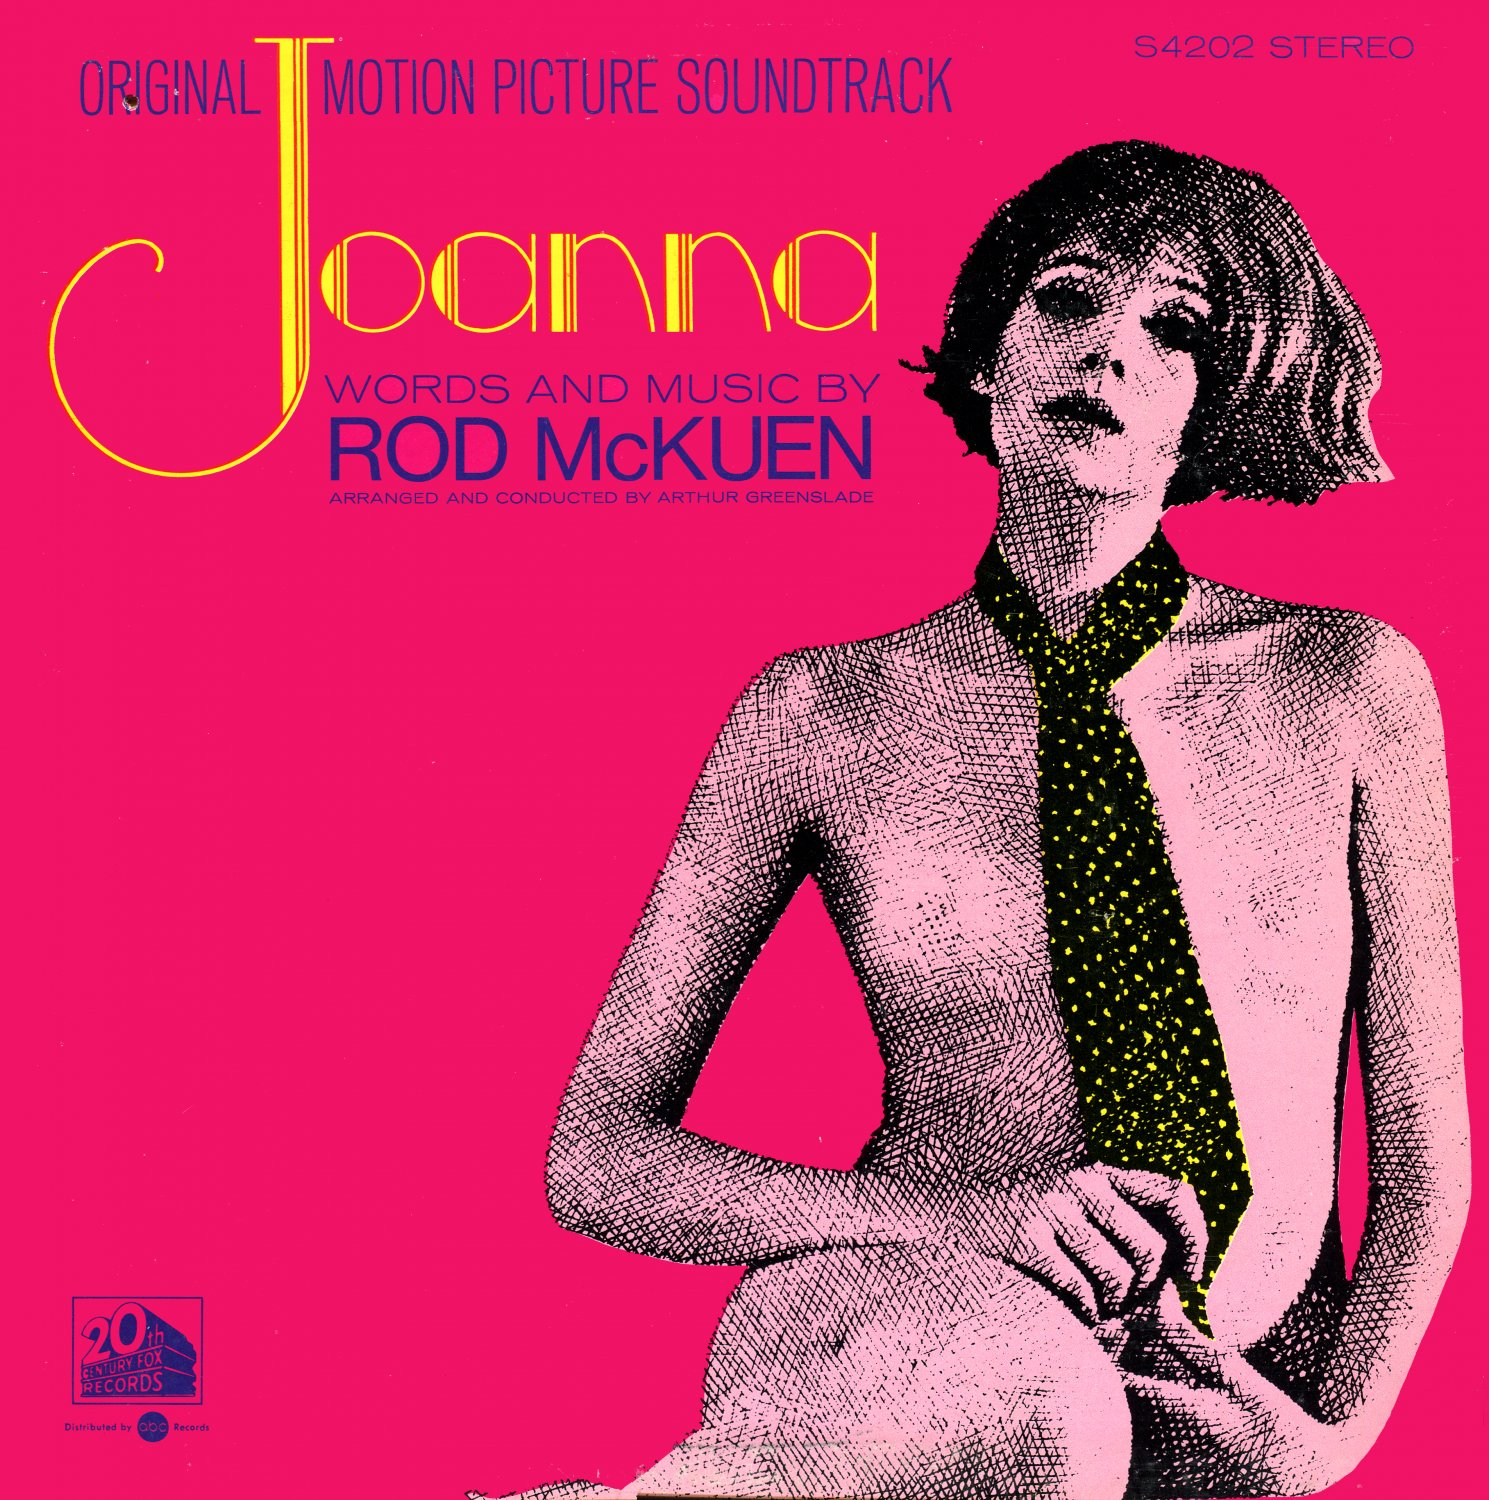 Joanna (1968) - Original Soundtrack, Rod McKuen OST LP/CD